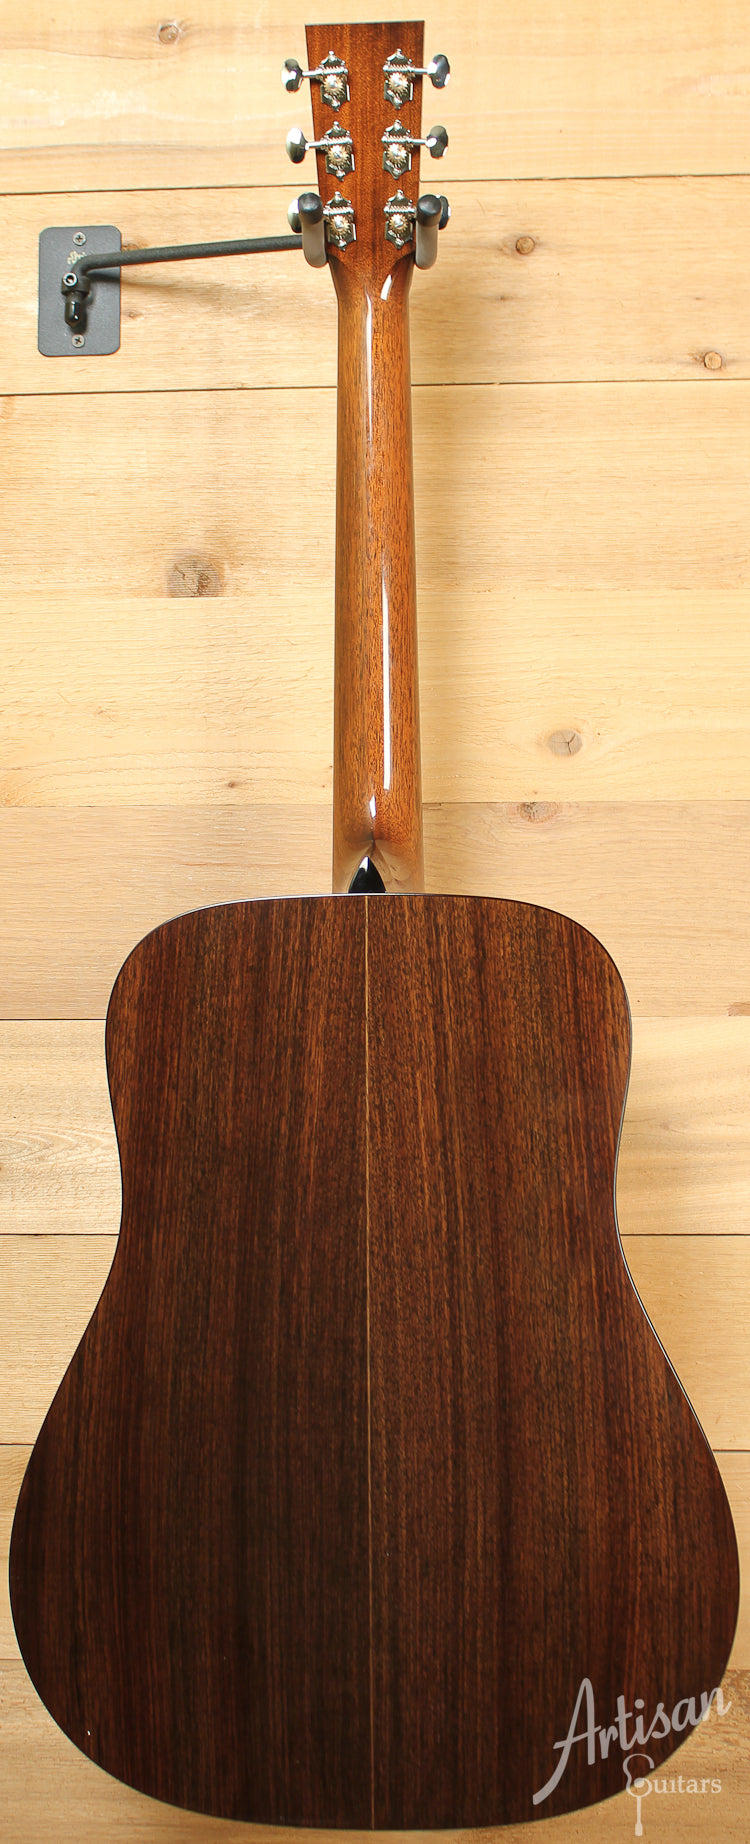 Pre Owned 2013 Collings D1 Indian Sitka Spruce and Indian Rosewood with Adirondack Braces ID-8060